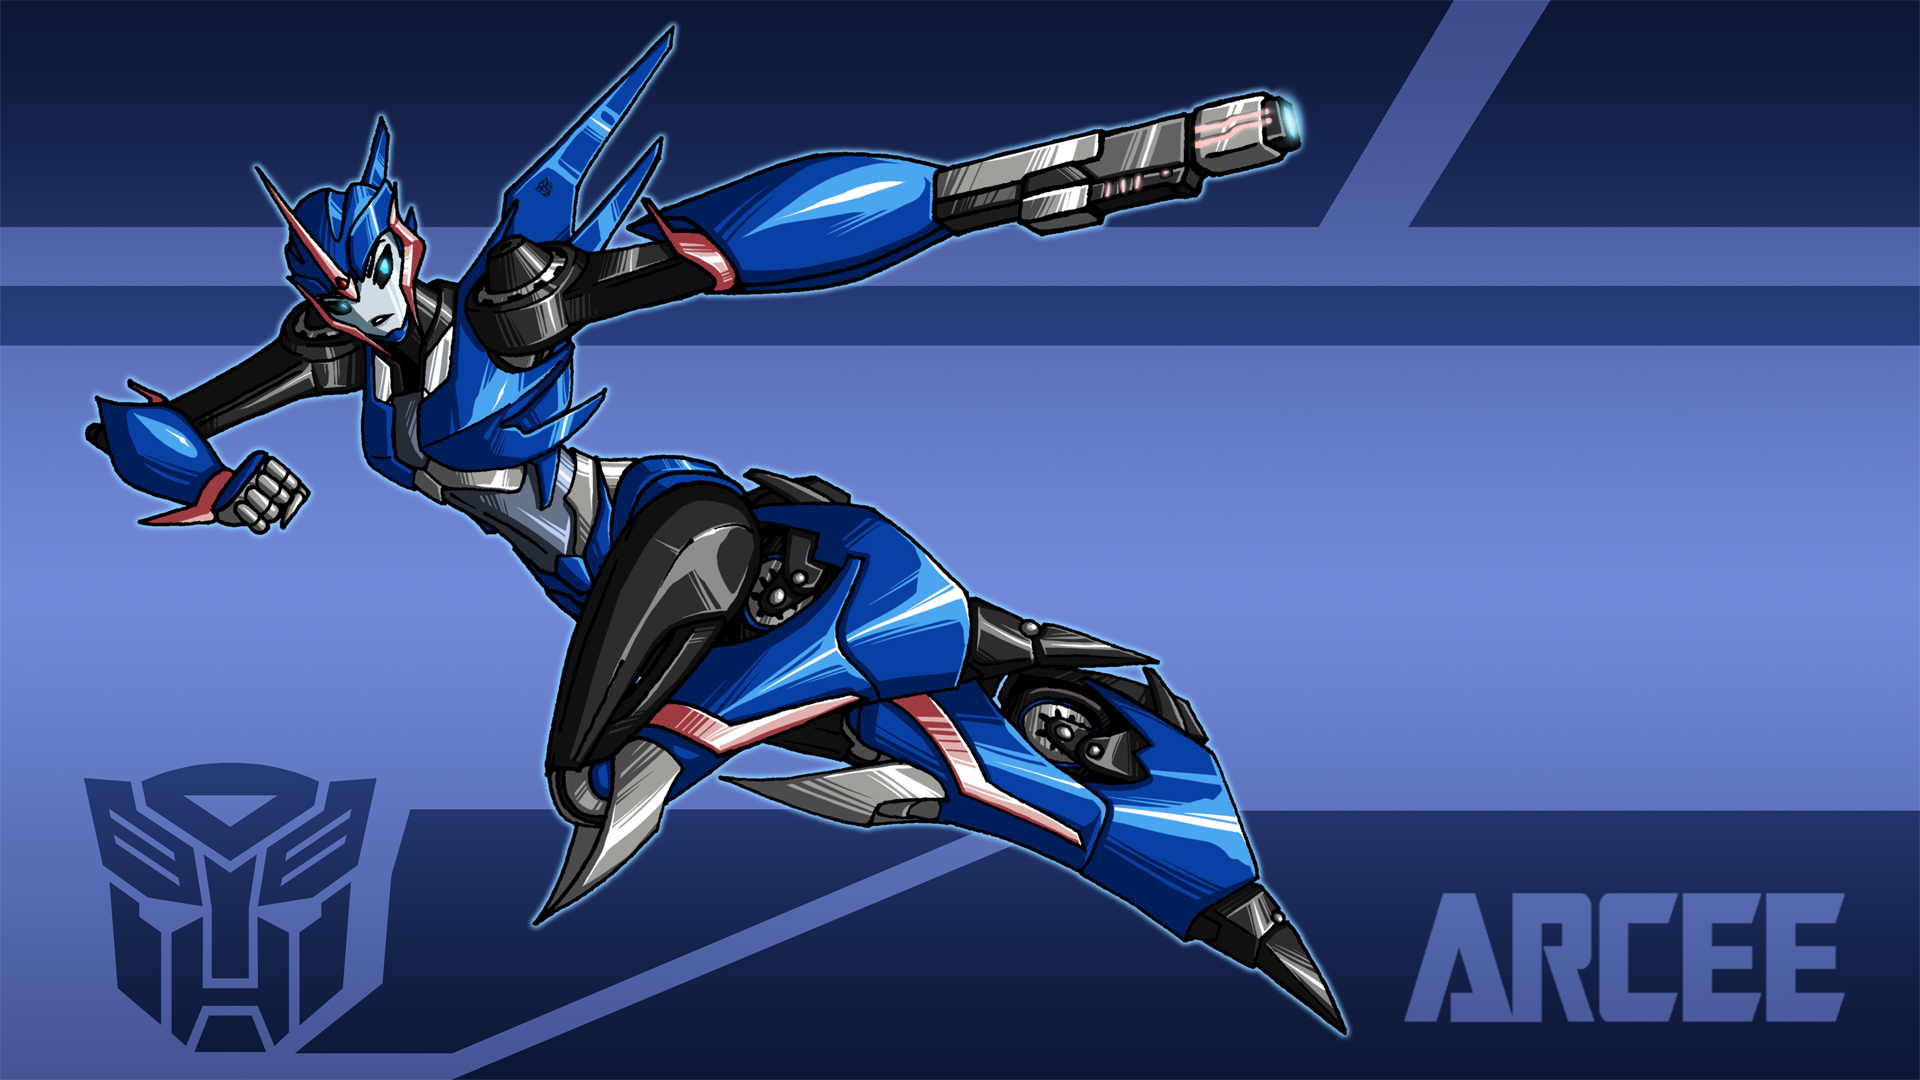 TFP-Arcee wallpaper by crovirus on DeviantArt